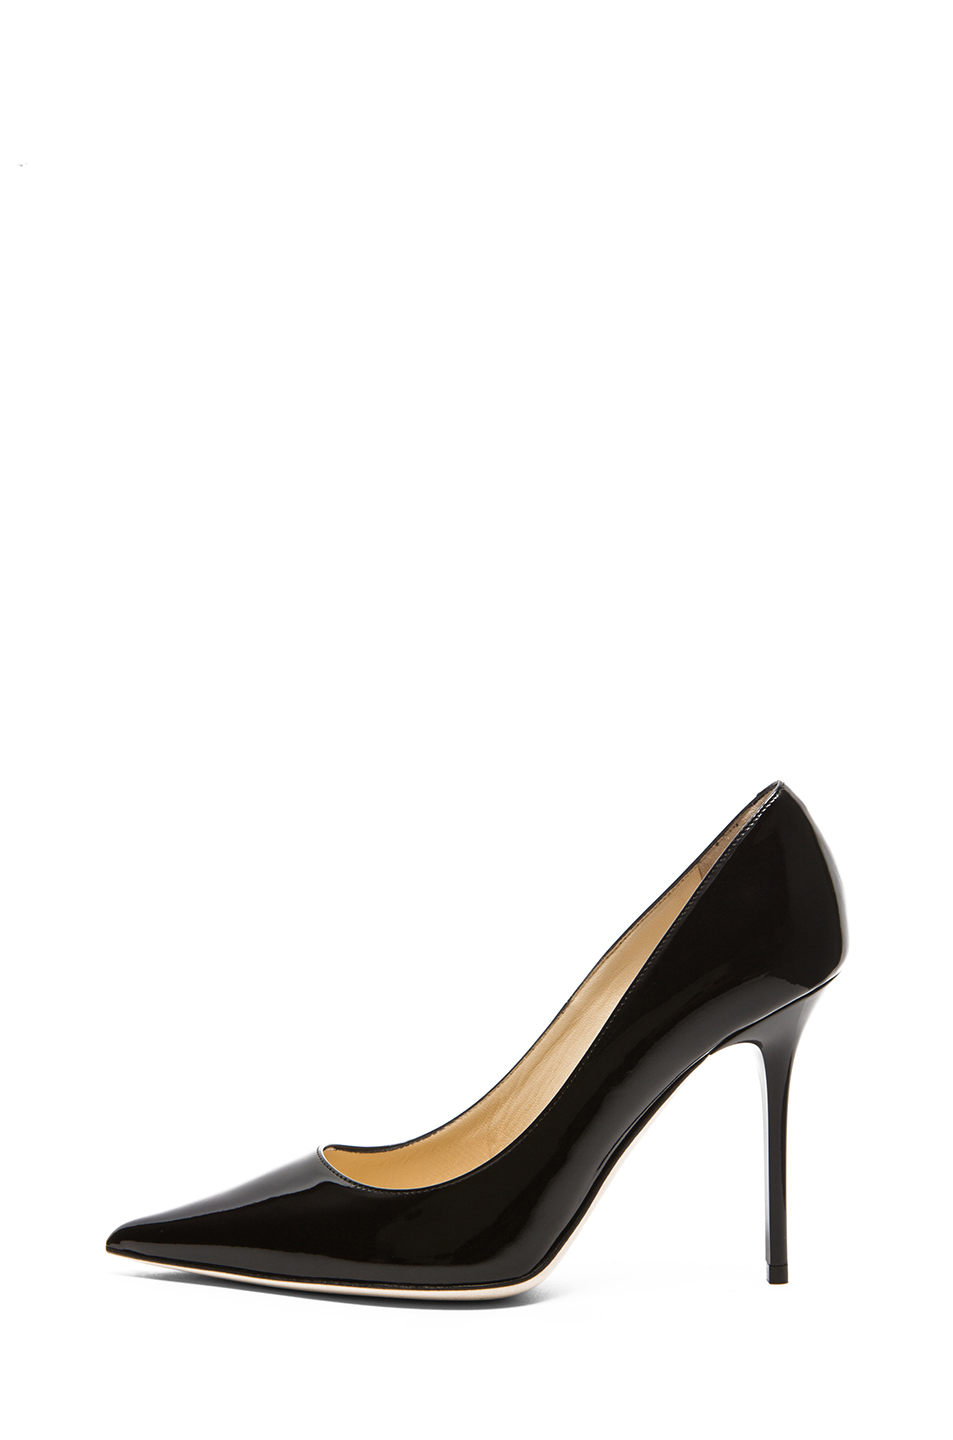 Jimmy Choo Abel Patent Leather Pumps in Black